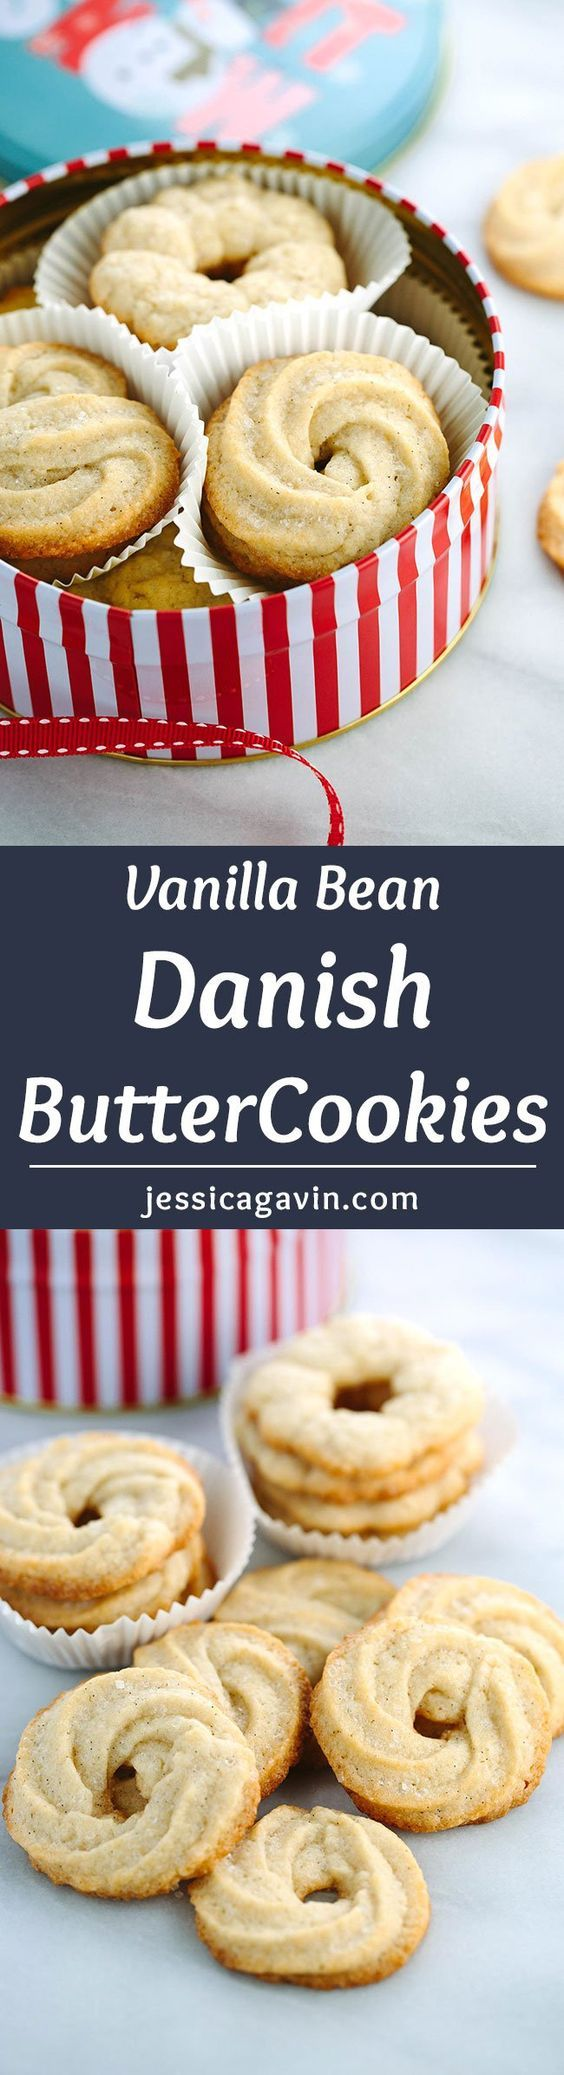 Vanilla Bean Danish Butter Cookies - using this recipe you can make your own tin of sweet butter cookies with different unique piped designs. via @foodiegavin